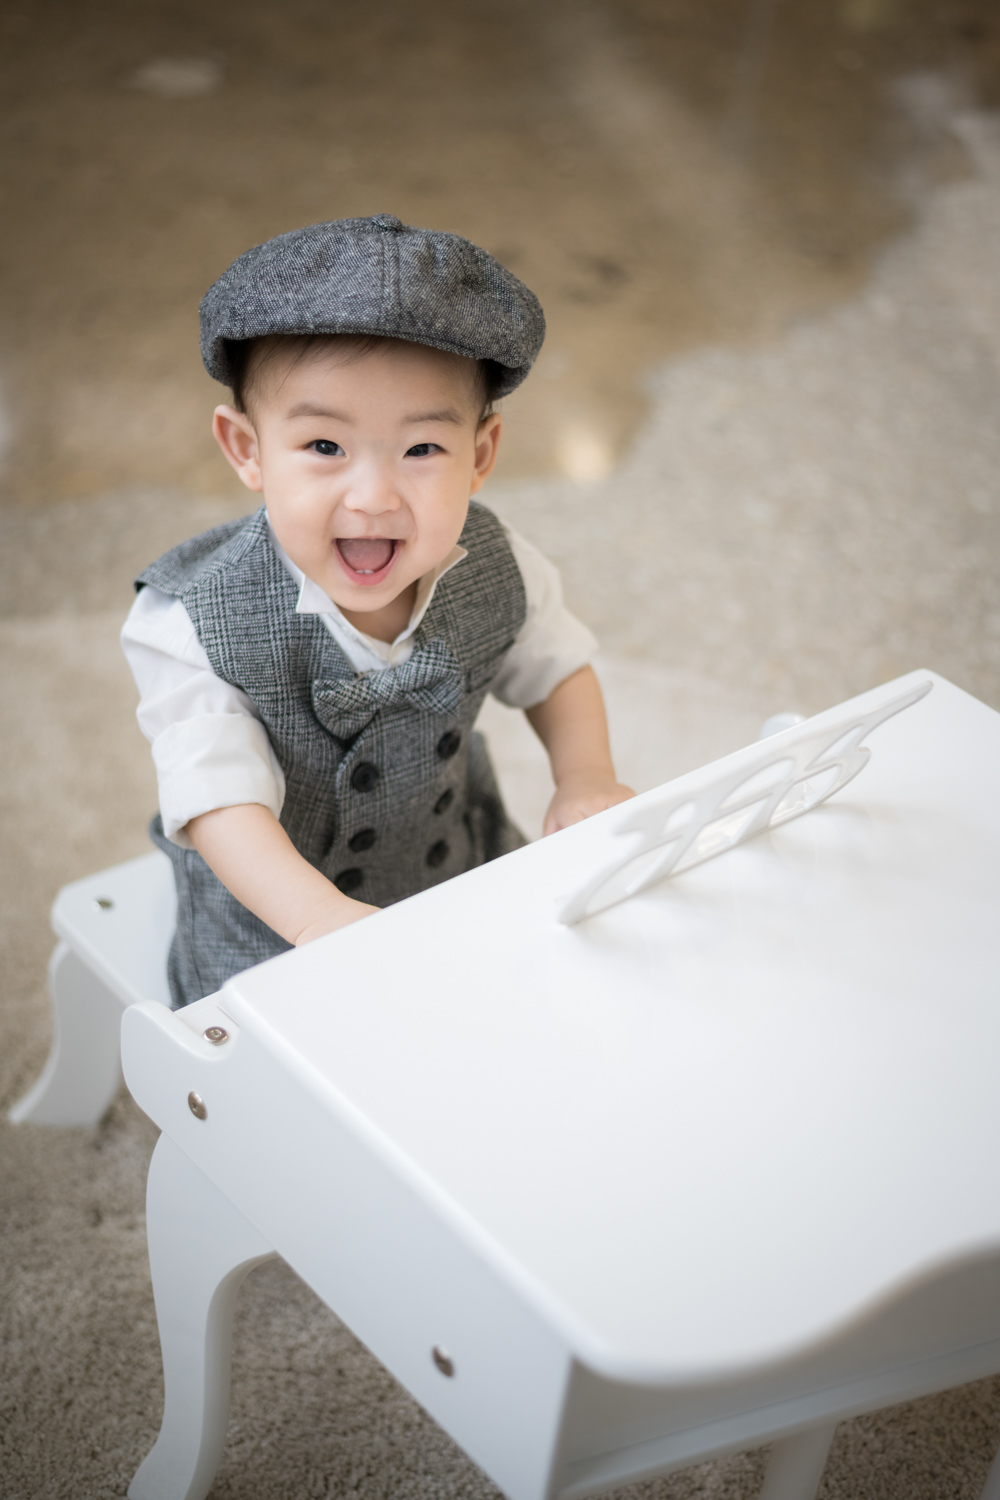 Toddler boy smiles and plays miniature piano in a suit.